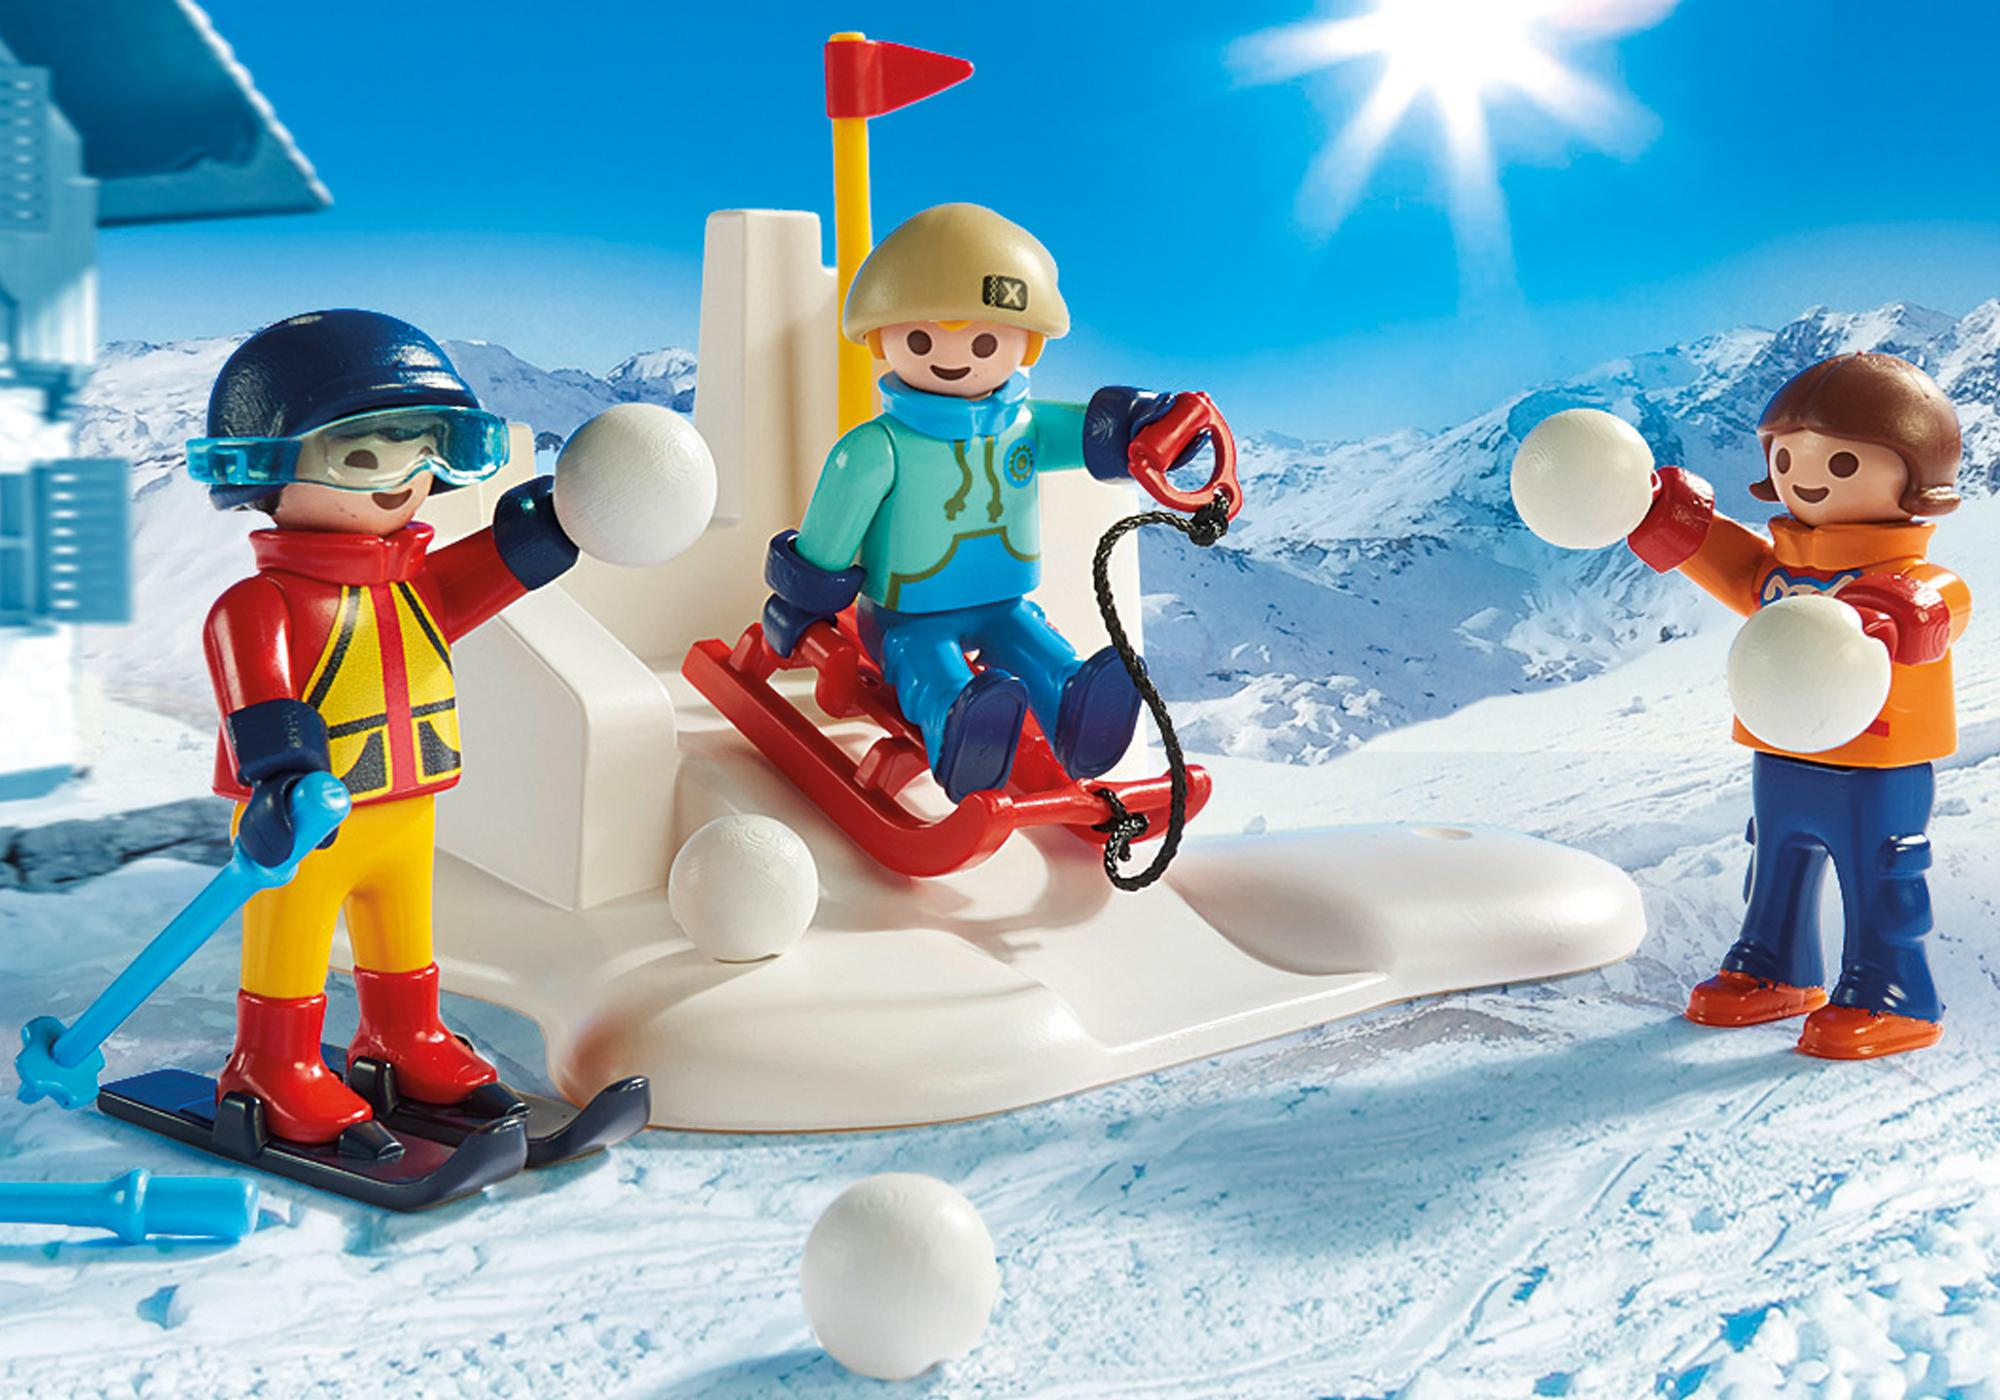 http://media.playmobil.com/i/playmobil/9283_product_extra1/Snowball Fight